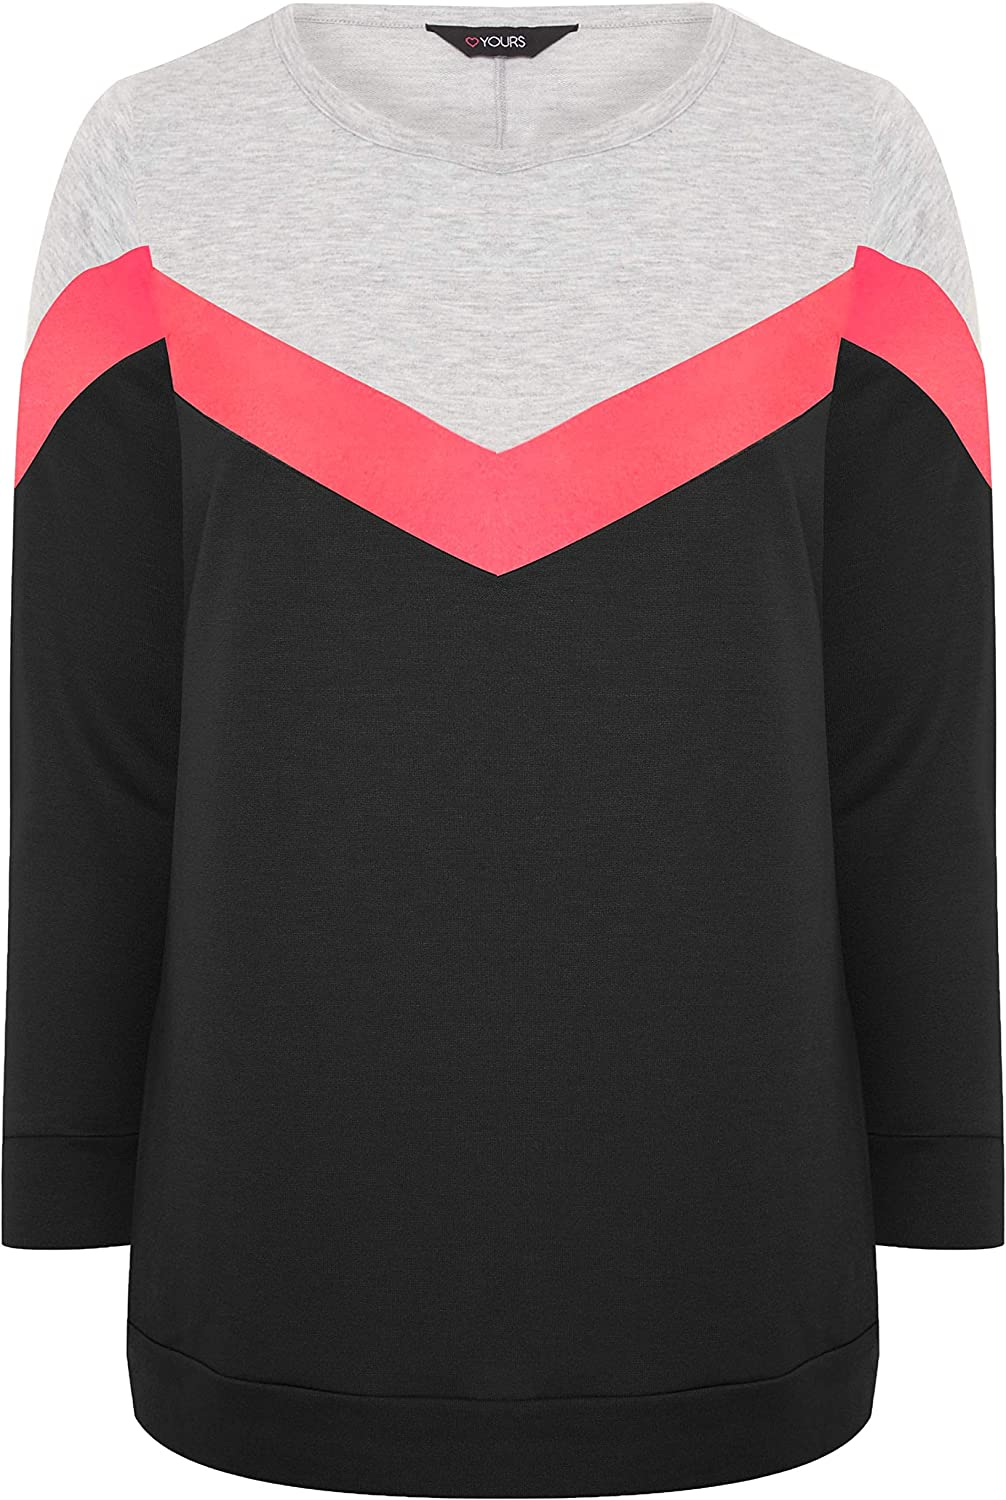 Yours Clothing Womens Plus Size Chevron Colour Block Sweatshirt